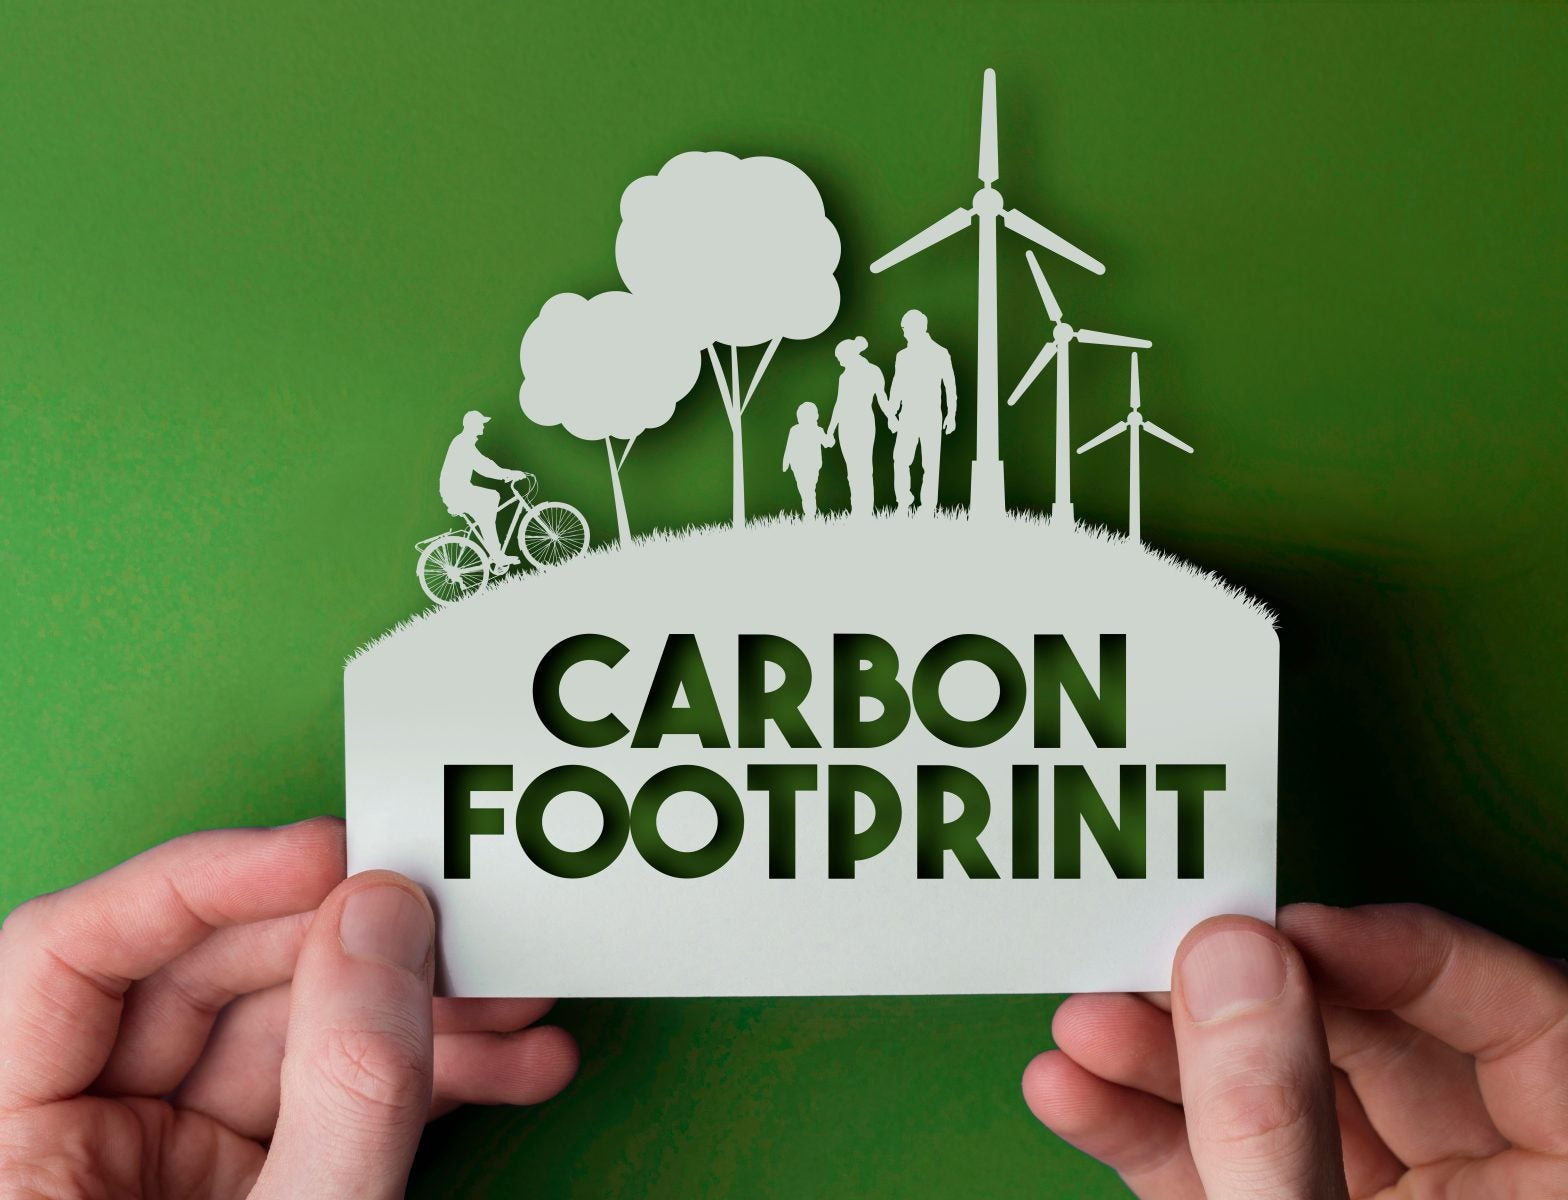 Staying Green While Traveling: How to Reduce Your Carbon Footprint!